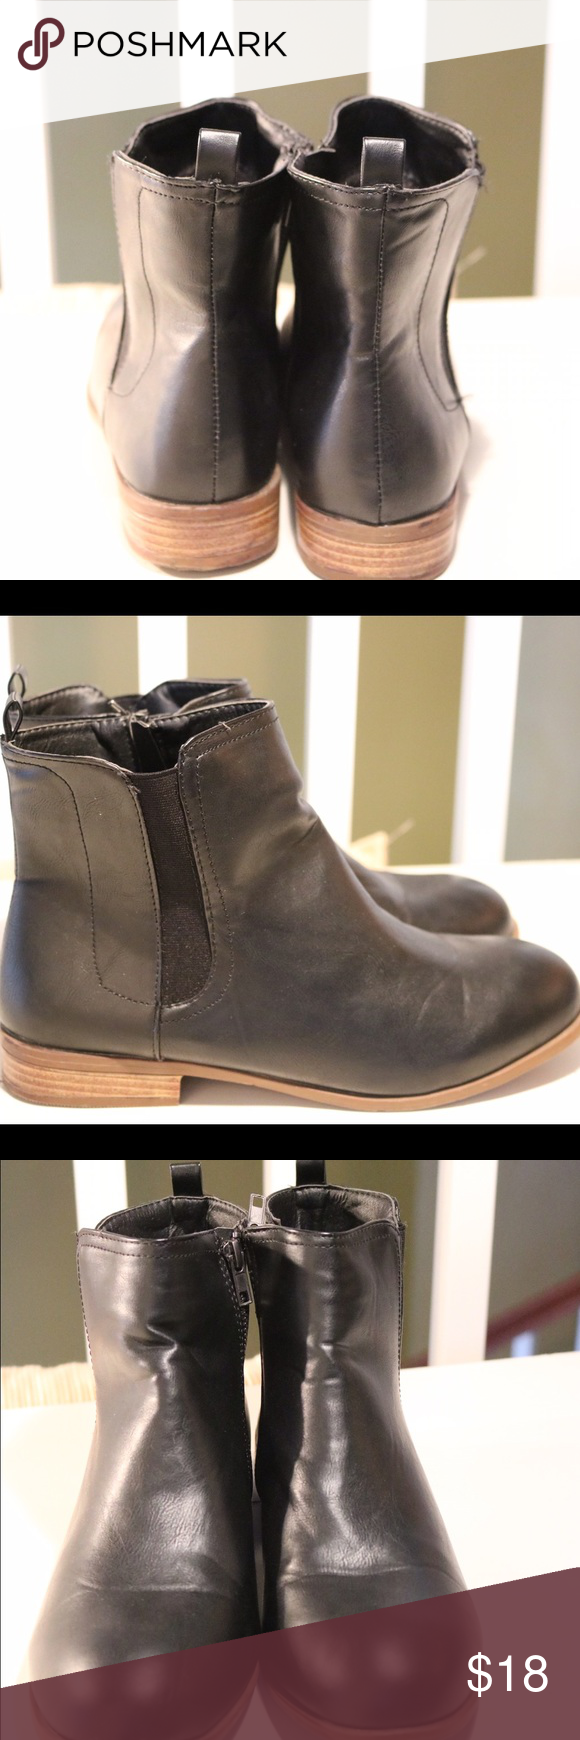 Black Booties Like new, barely worn black booties. 😊 Shoes Ankle Boots & Booties